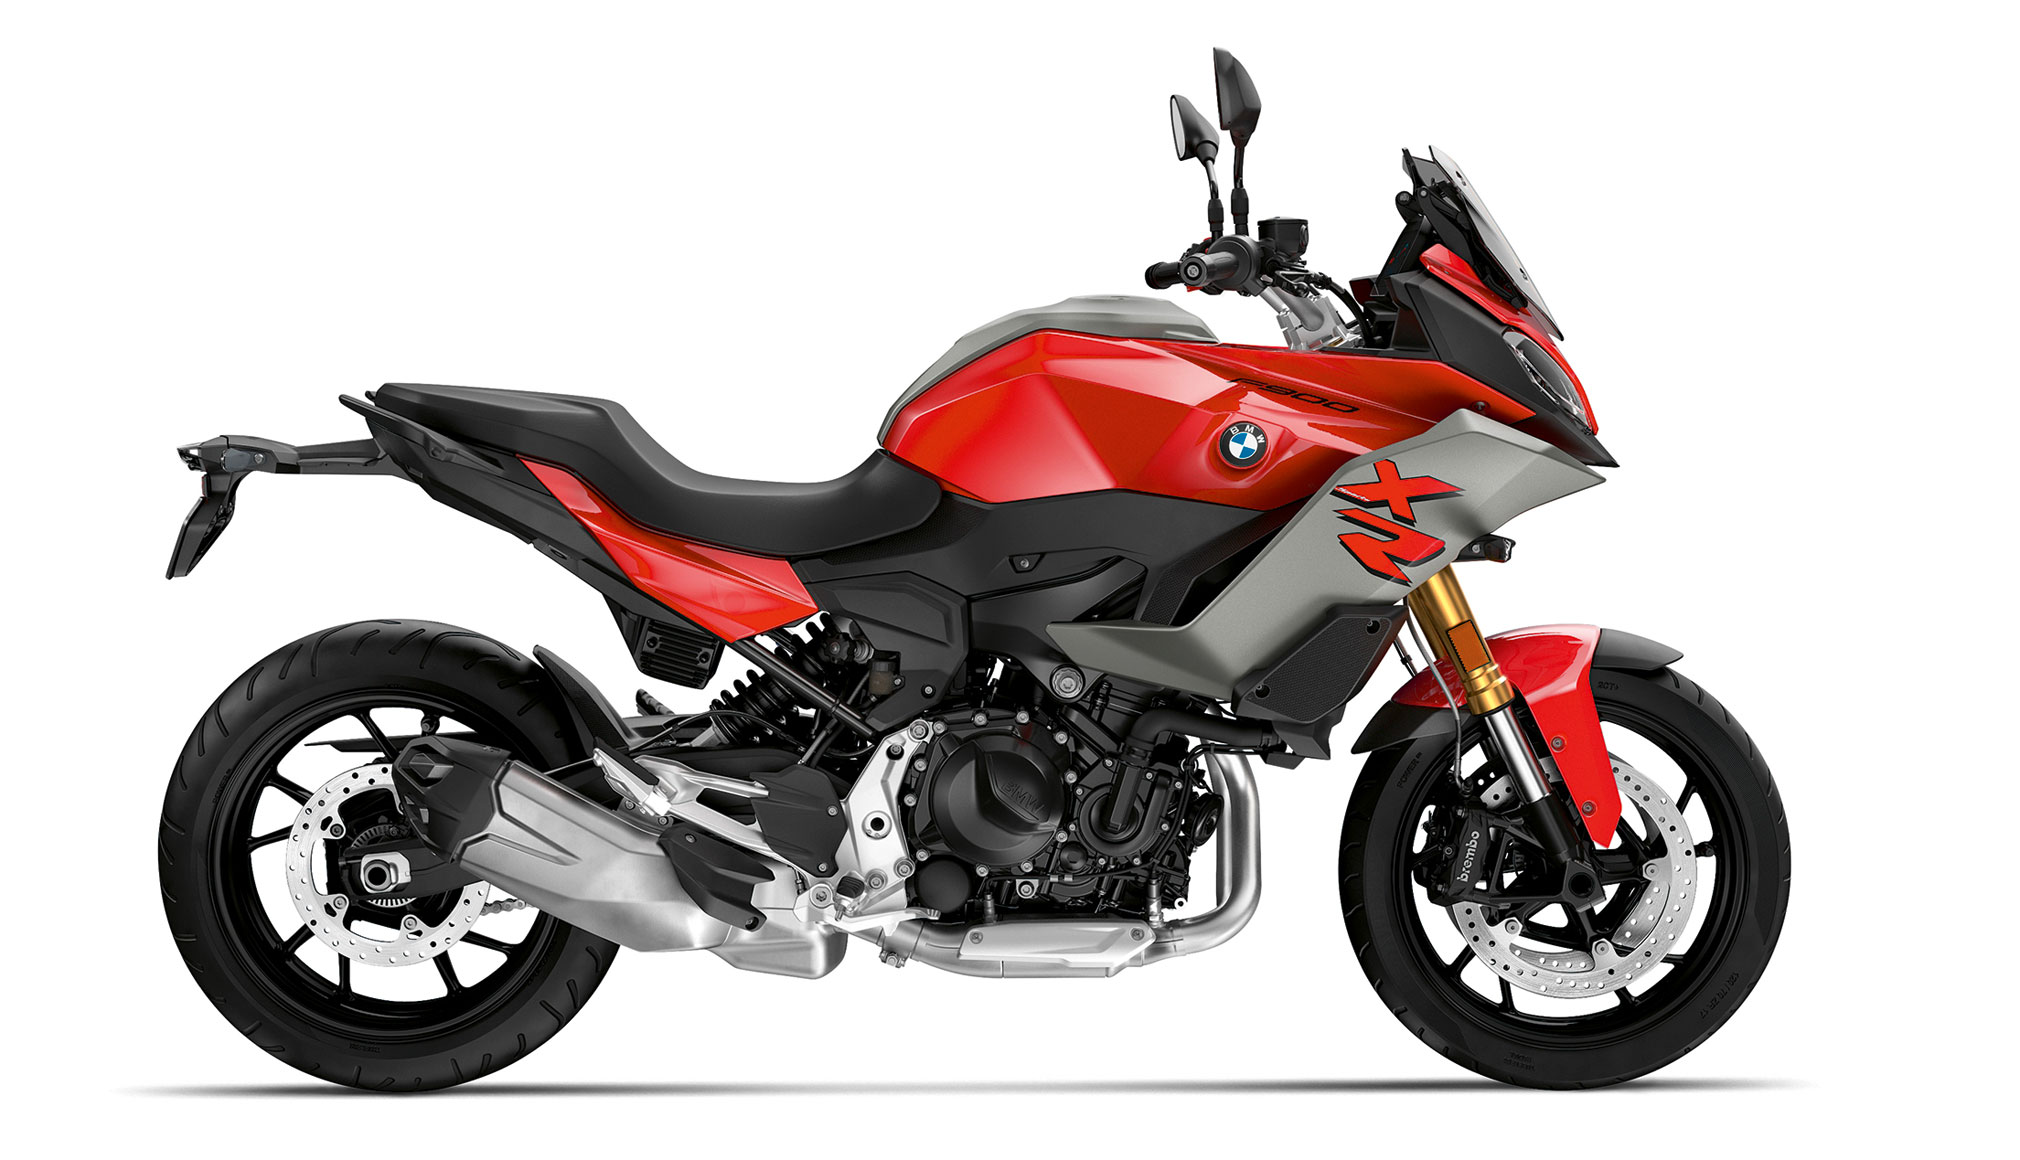 2020 bmw f900xr guide • total motorcycle